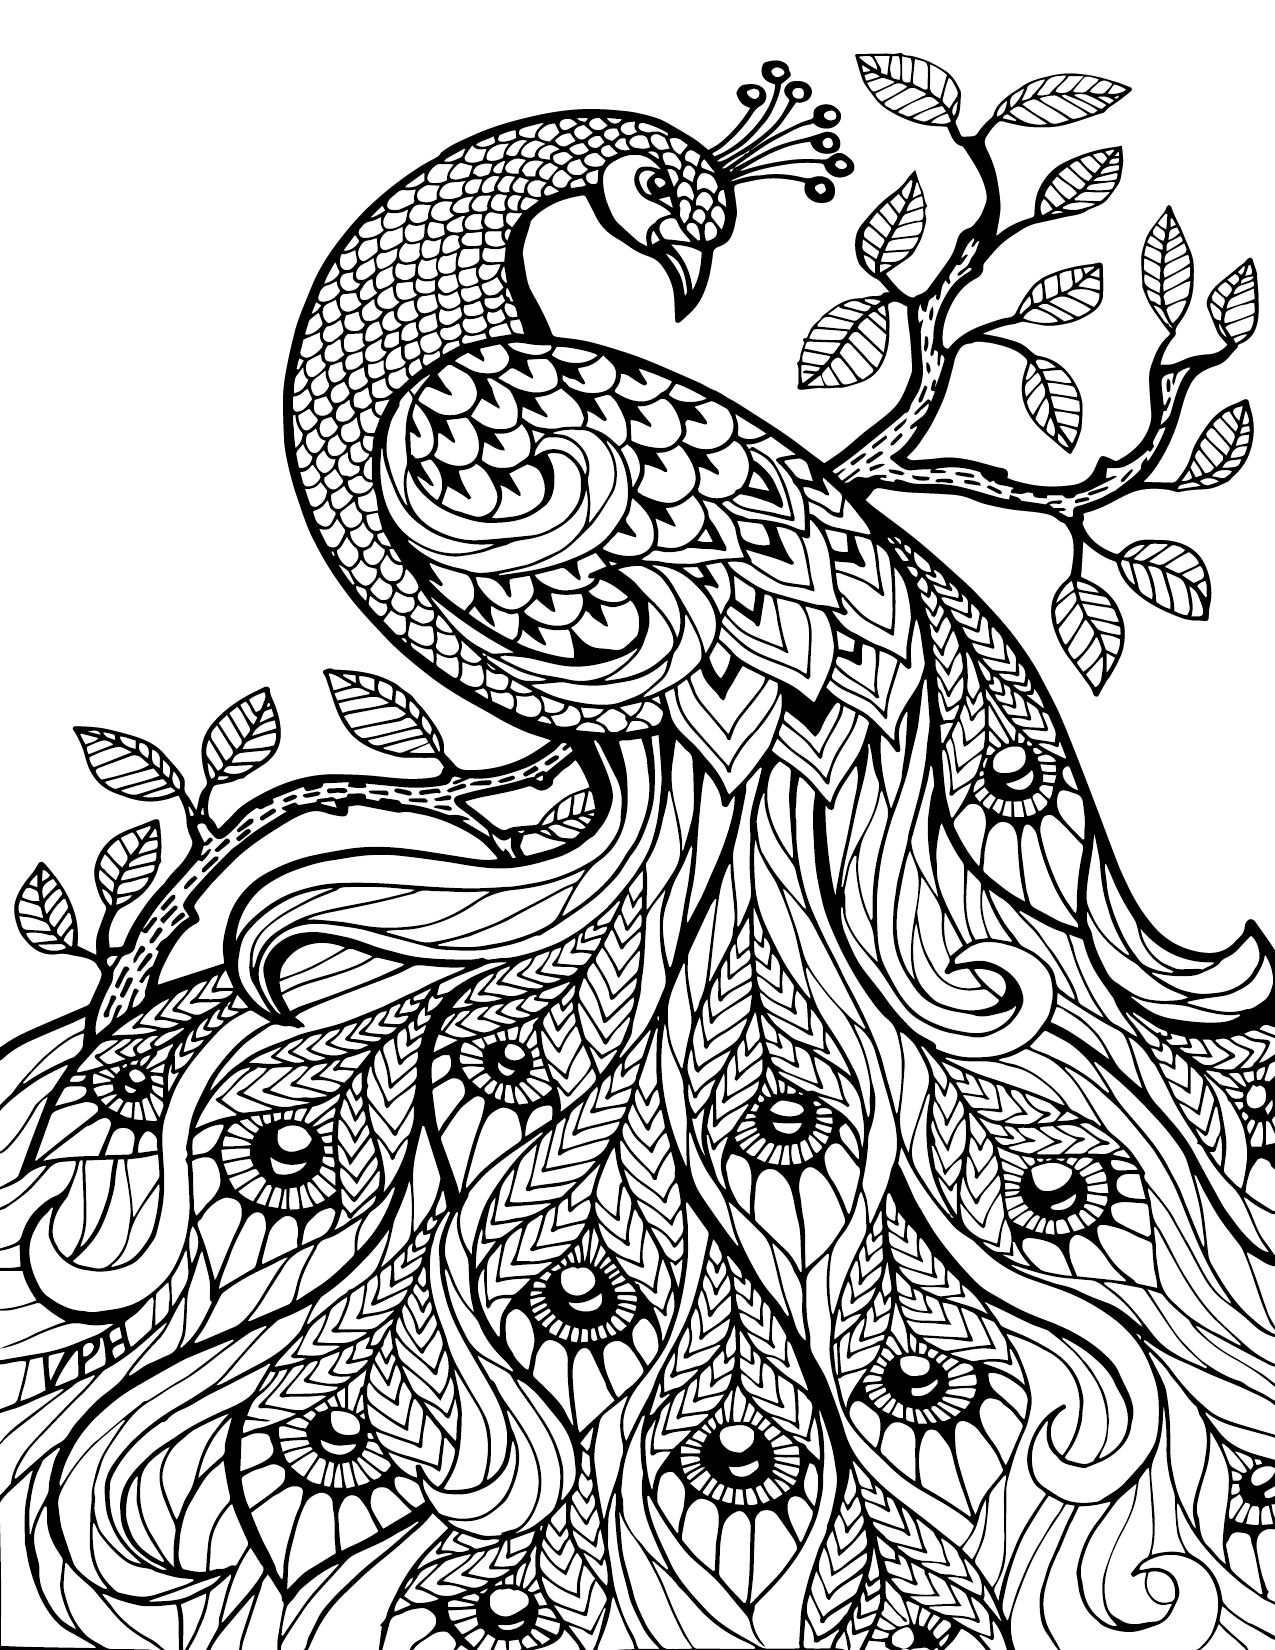 Free Printable Coloring Pages For Adults Only Image 36 Art - Free Printable Coloring Designs For Adults